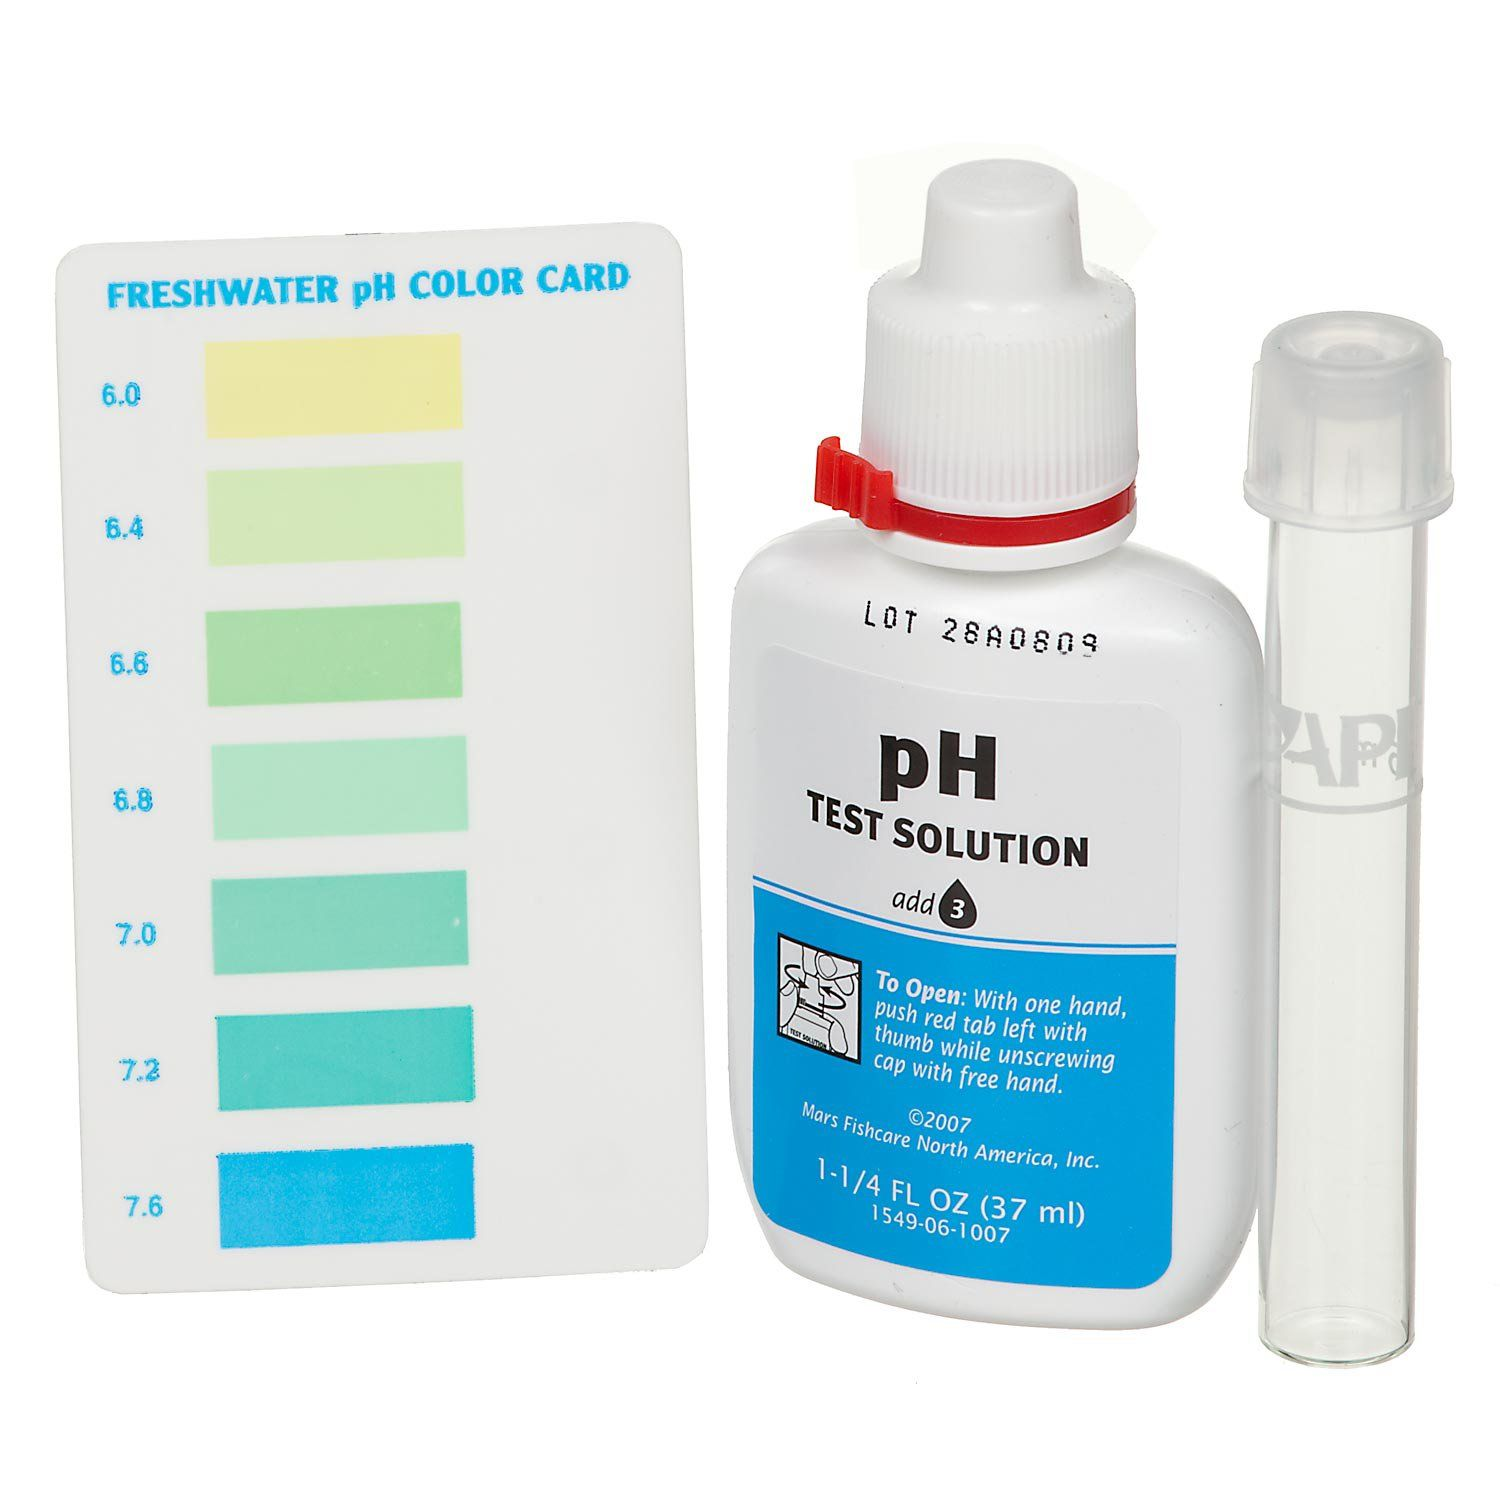 Api freshwater ph test kit freshwater aquarium ph and aquariums 7 ph level in your freshwater aquarium from 60 to 76 ppm kit contains dropper nvjuhfo Gallery